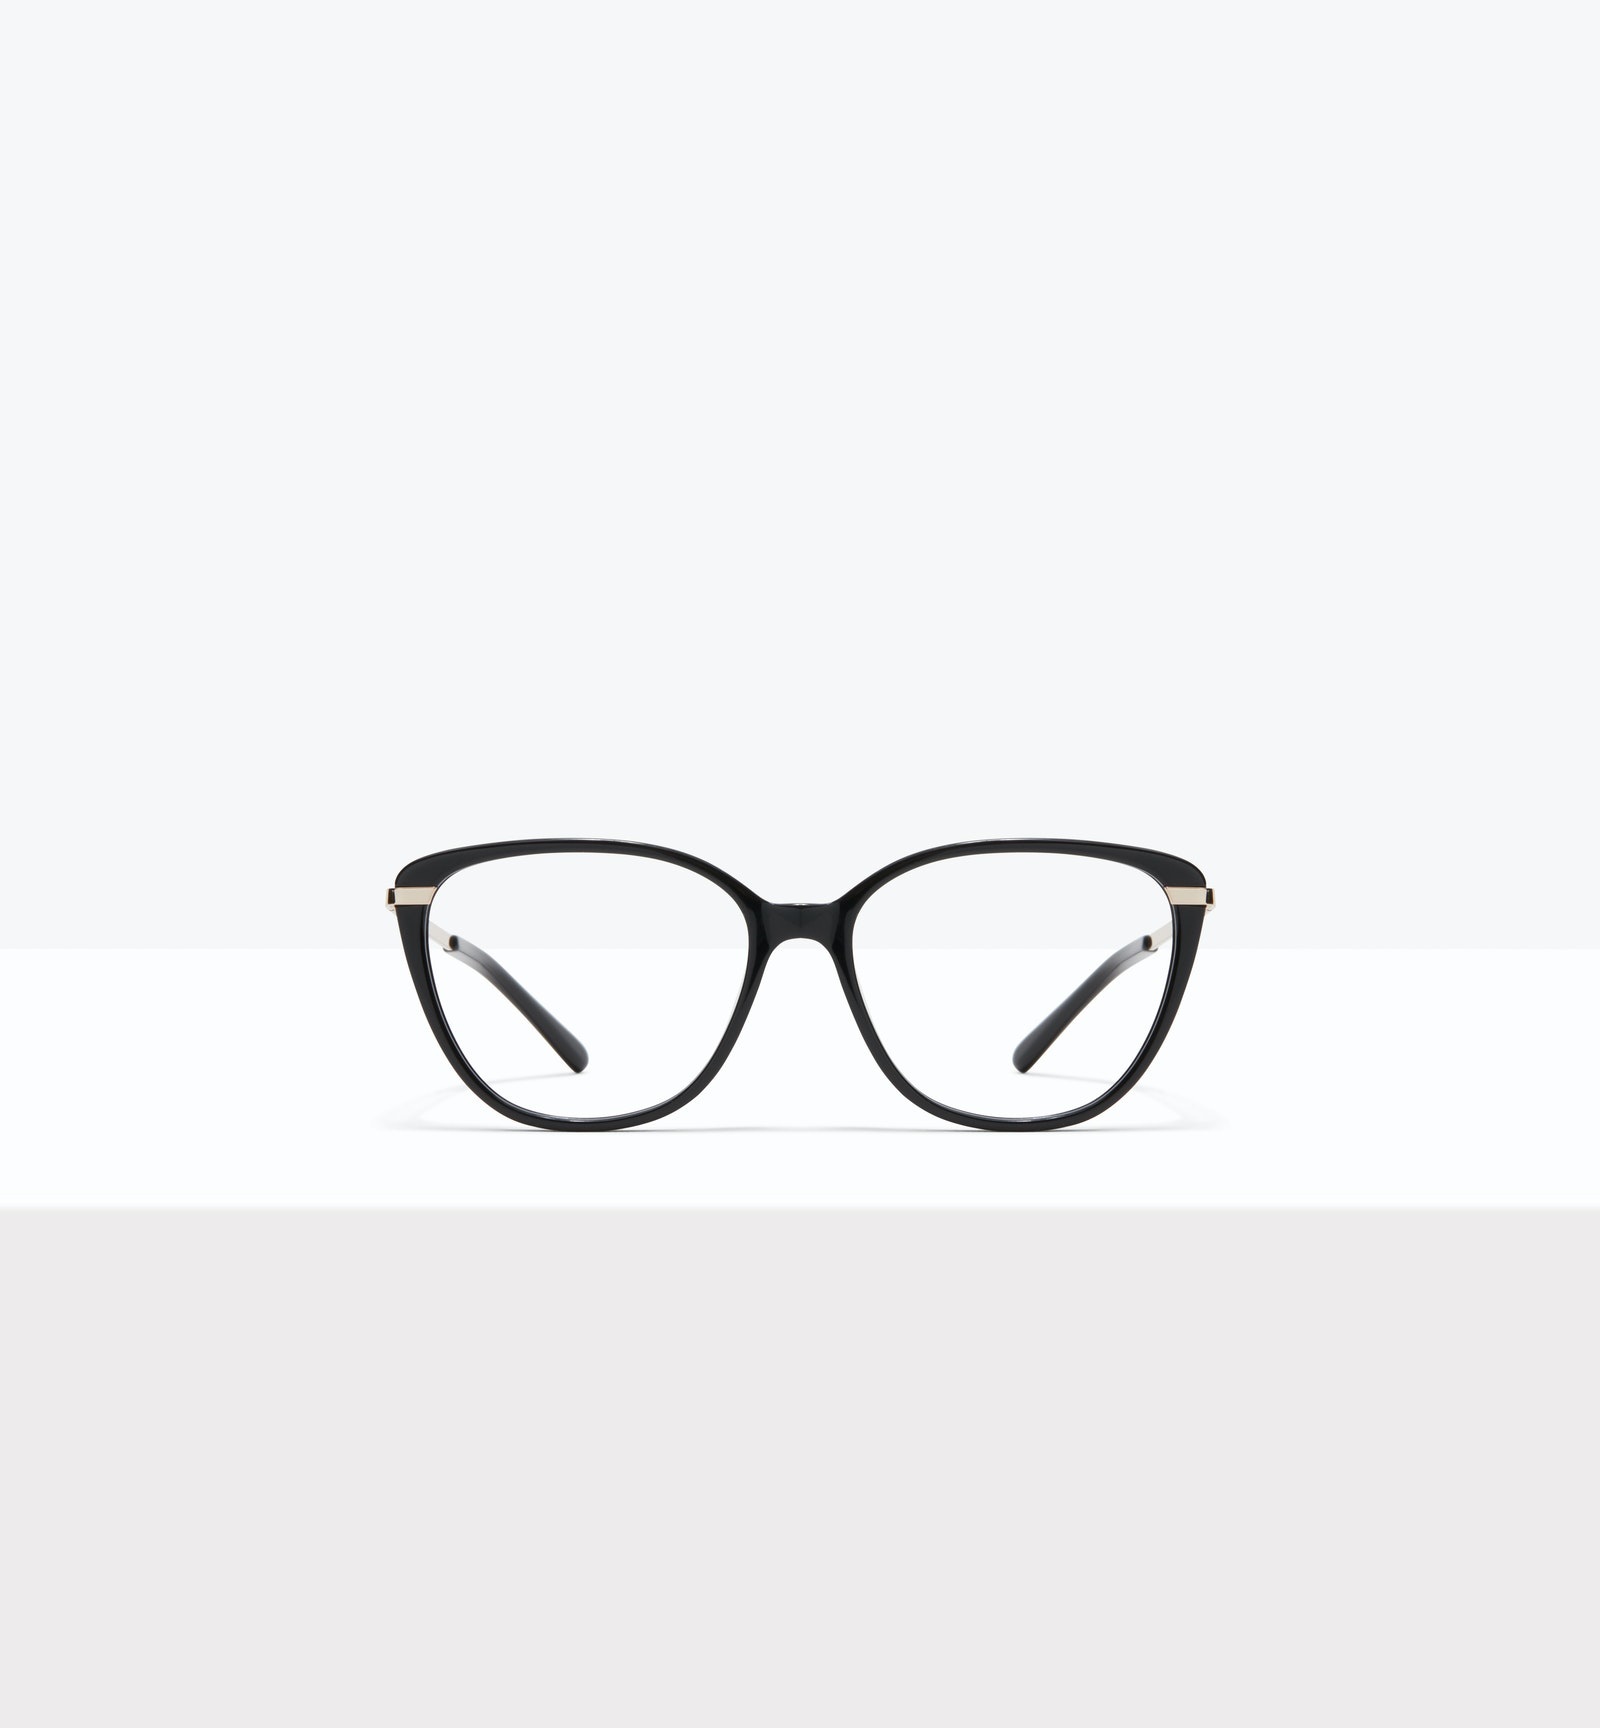 Affordable Fashion Glasses Rectangle Square Eyeglasses Women Illusion L Onyx